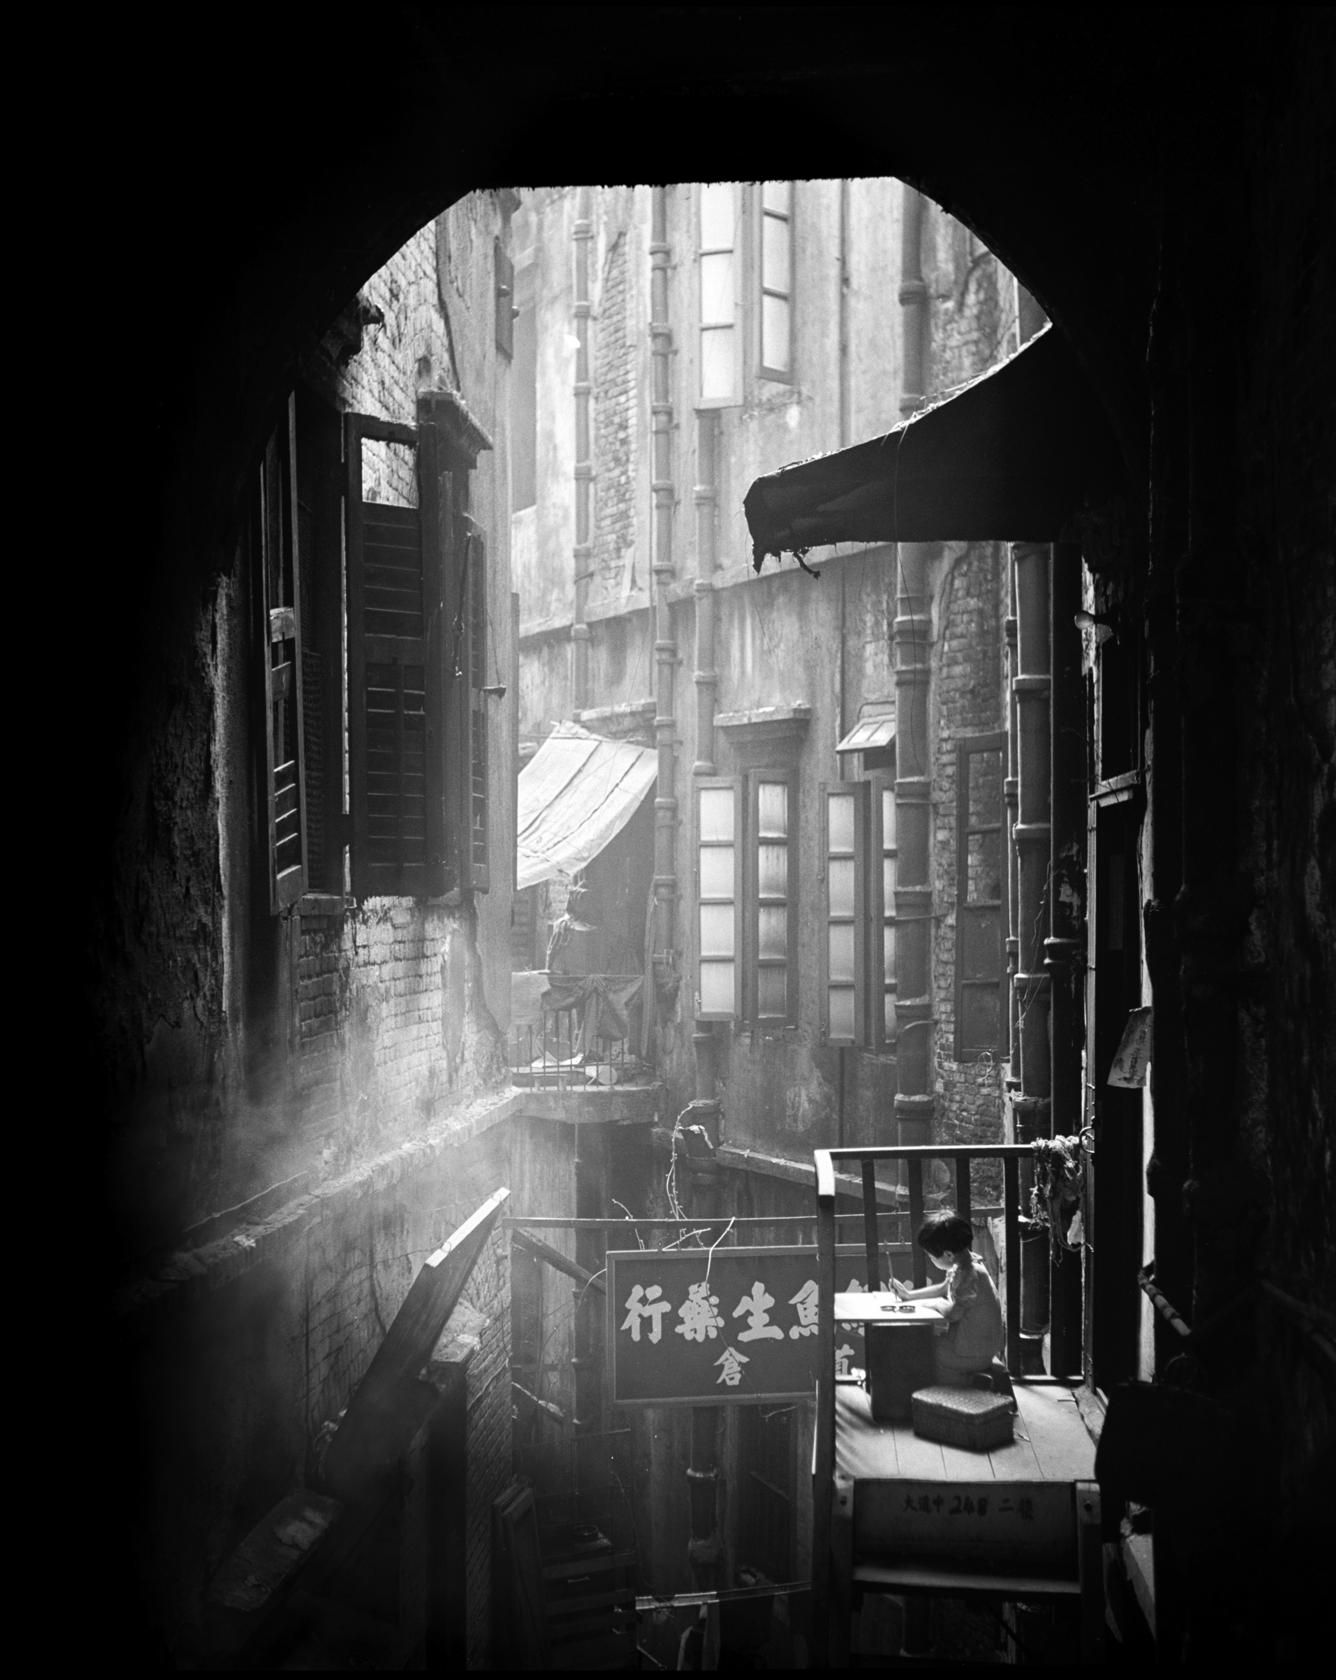 Street life: Hong Kong in the 1950s as seen through a teenage photographer's lens | South China Morning Post